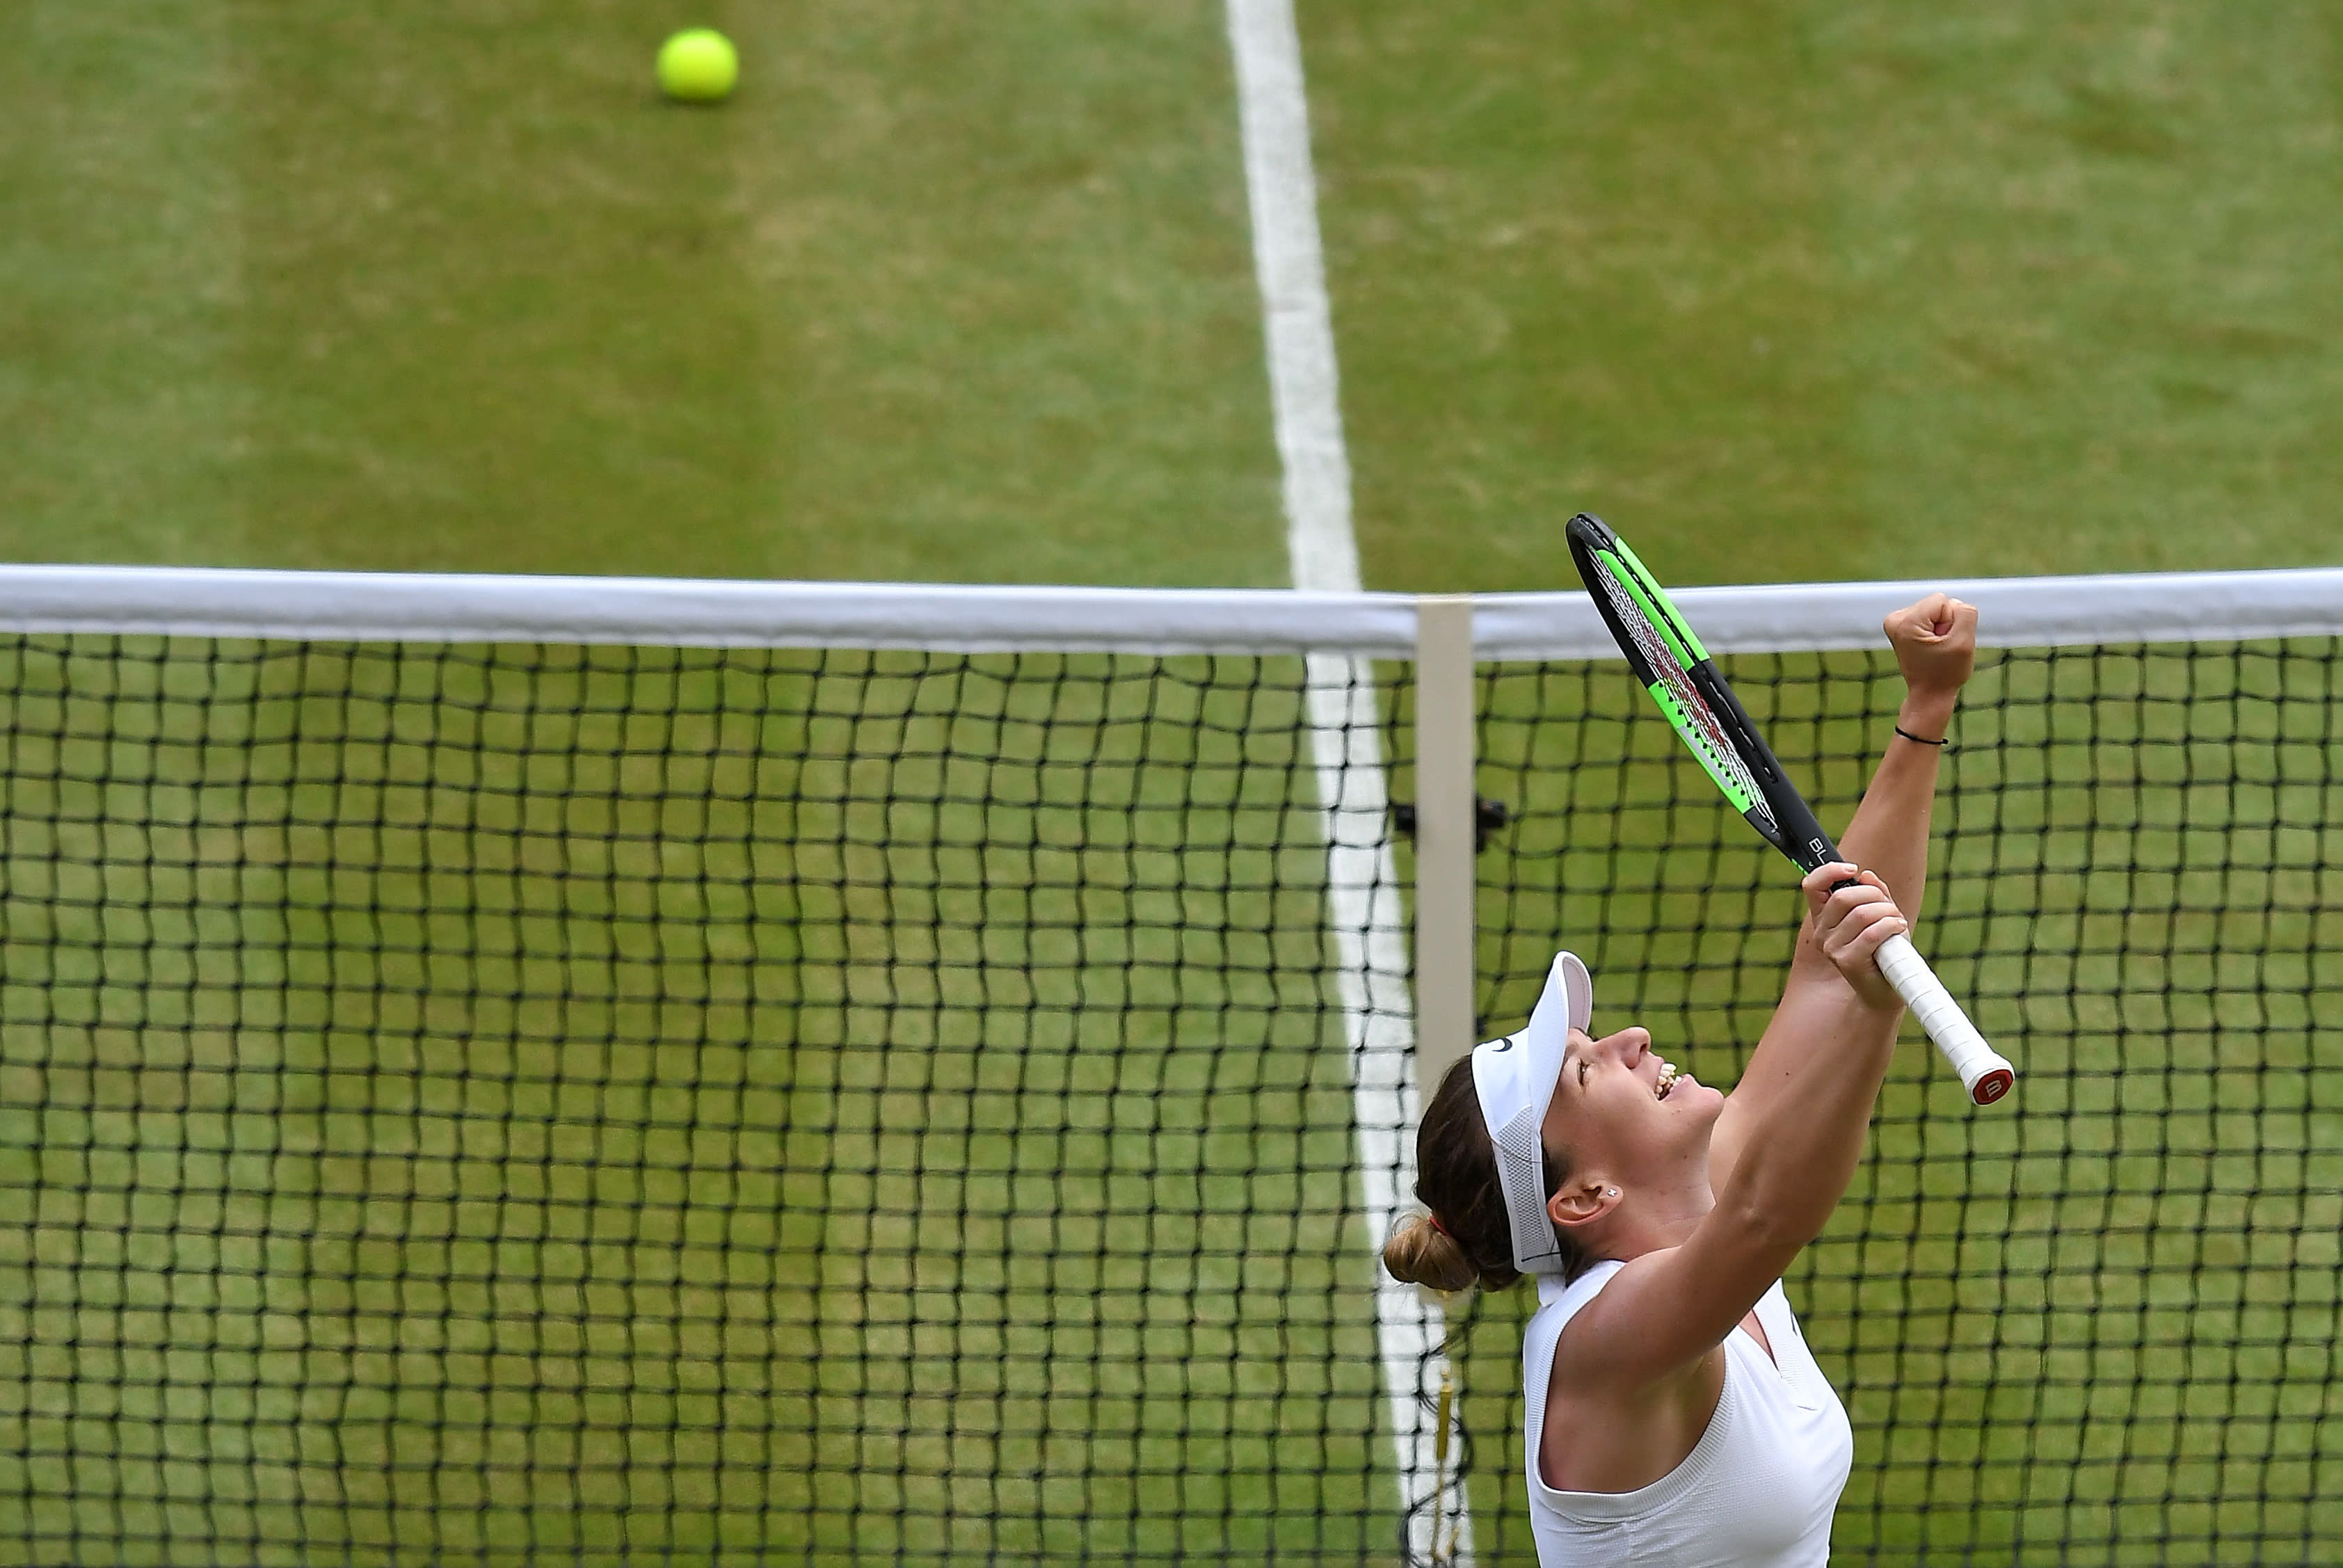 Simona Halep beats Serena Williams to win Wimbledon